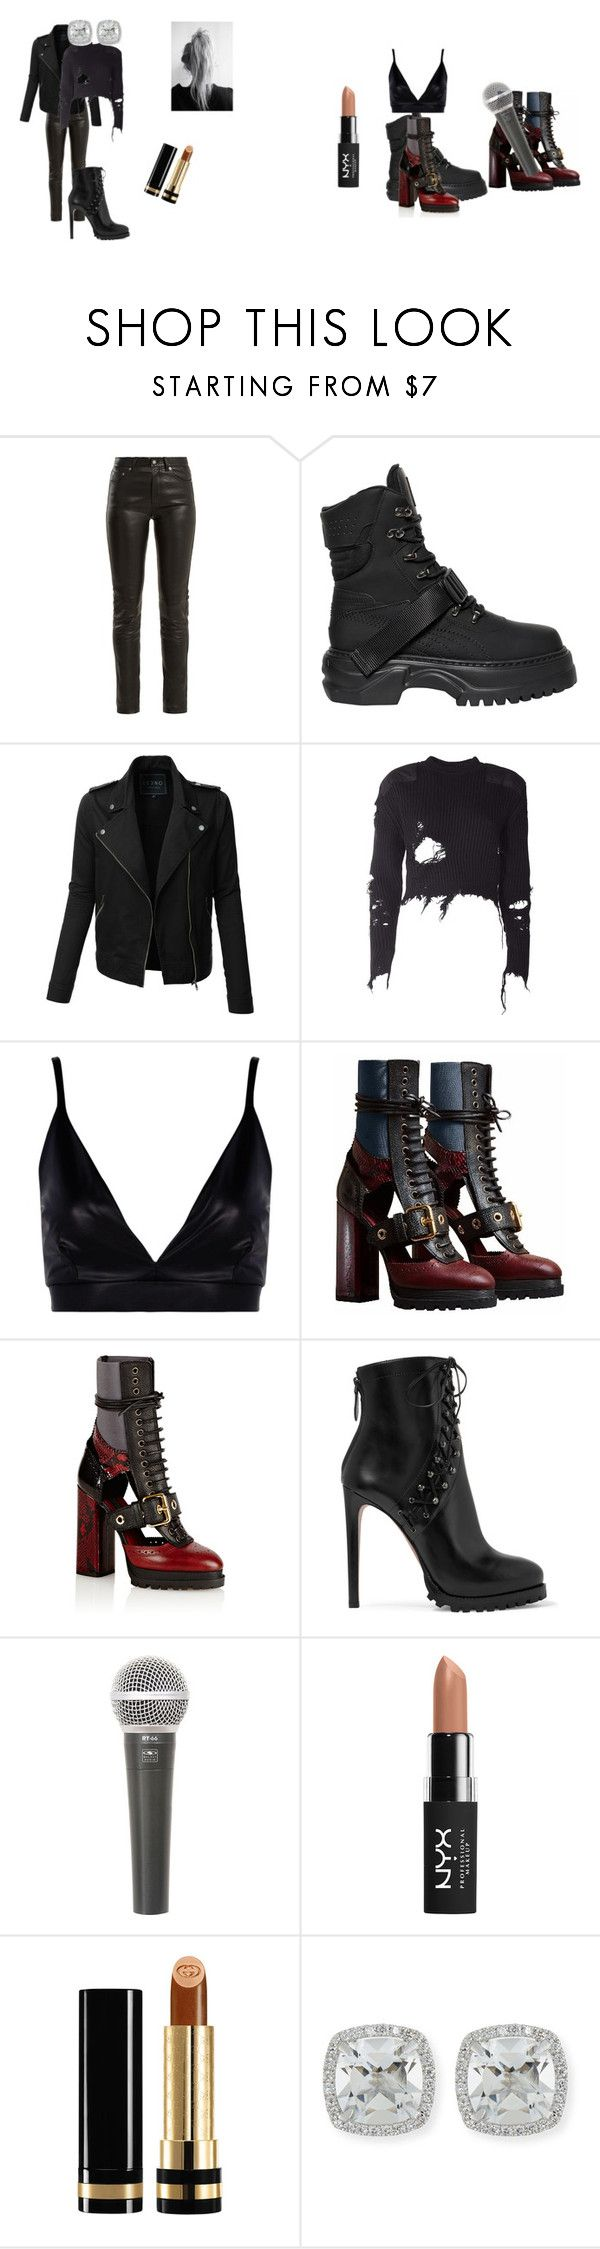 """""""Badass"""" by uknowit1200 on Polyvore featuring Yves Saint Laurent, Puma, LE3NO, adidas Originals, Boohoo, Burberry, Alaïa, Galaxy Audio, NYX and Gucci"""